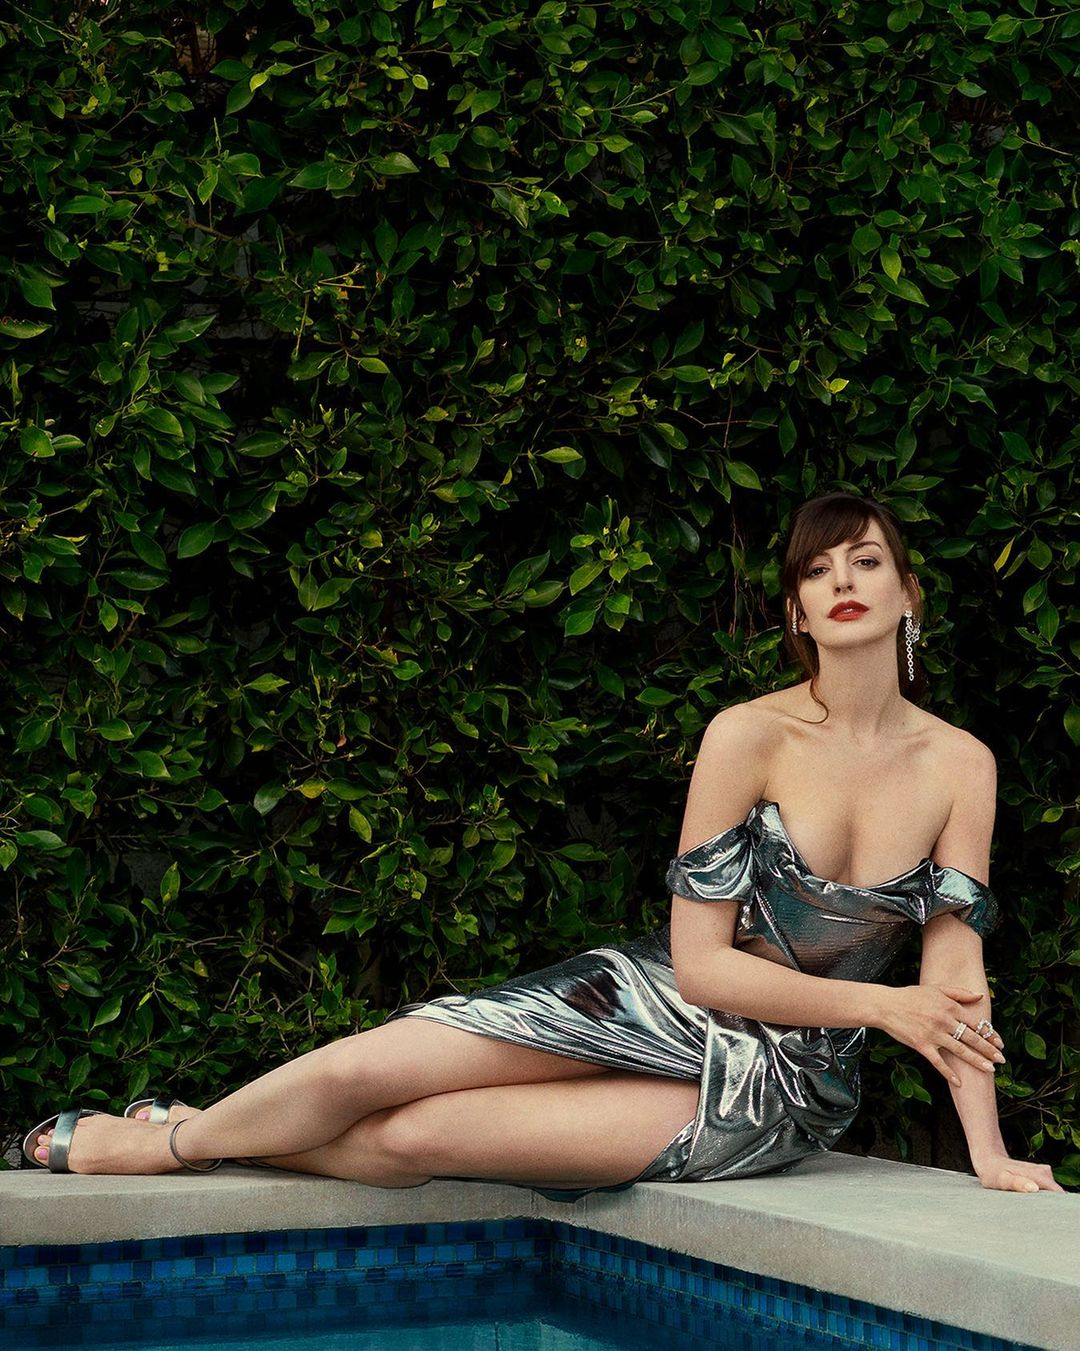 Fascinated by the image of the enormously busty goddess Anne Hathaway who transforms into a princess: The beauty of a Hollywood treasure, a royal aura that is hard to match - Photo 14.